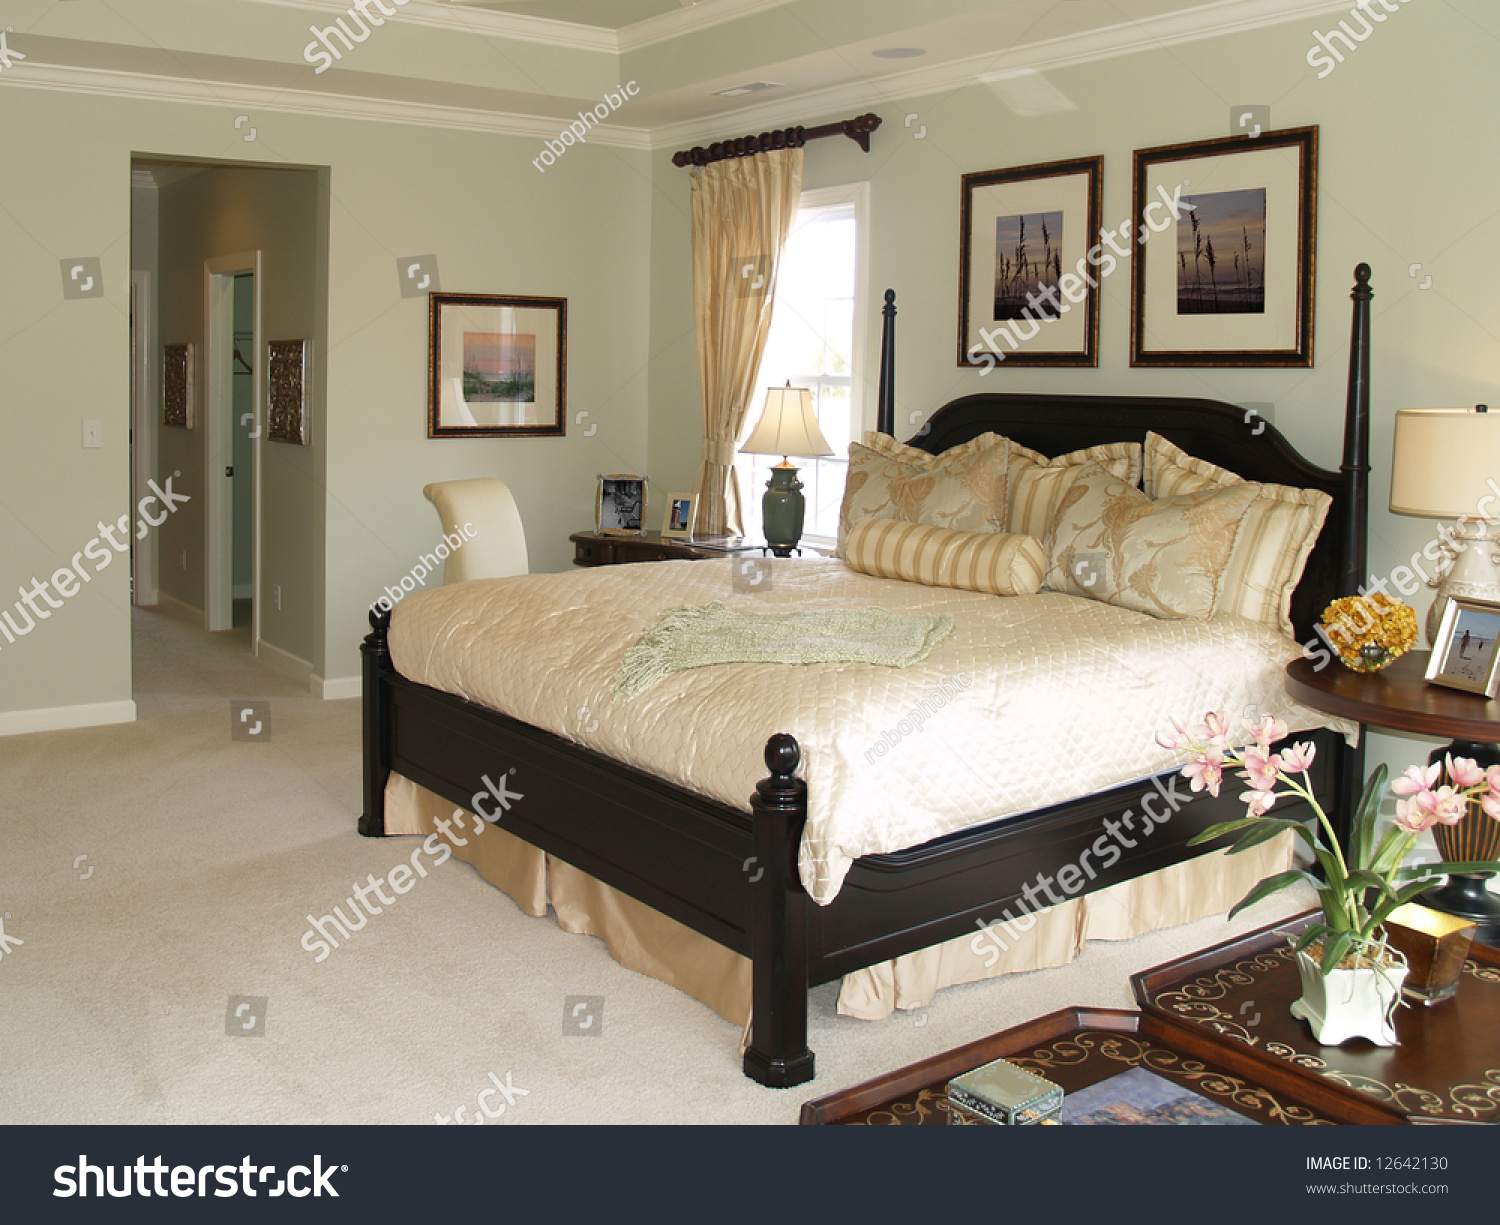 Luxury master bedroom suite in an upscale american home showing the king  sized bed and the. Luxury Master Bedroom Suite Upscale American Stock Photo 12642130